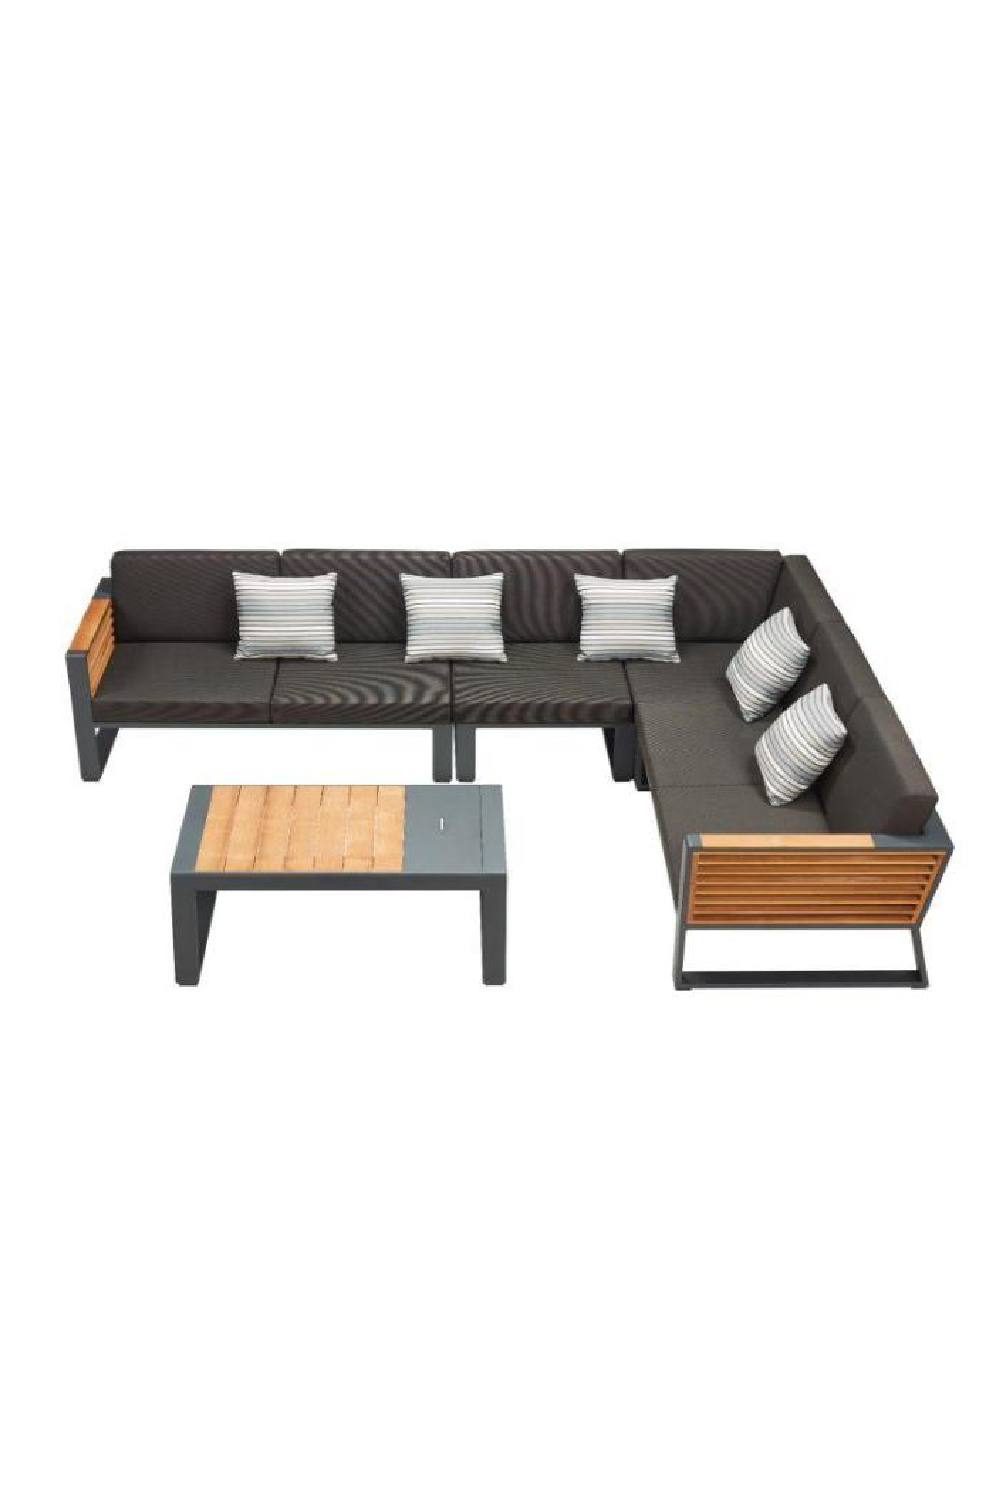 Corner Outdoor Lounge Set | Higold New York | OROA Luxury Furniture